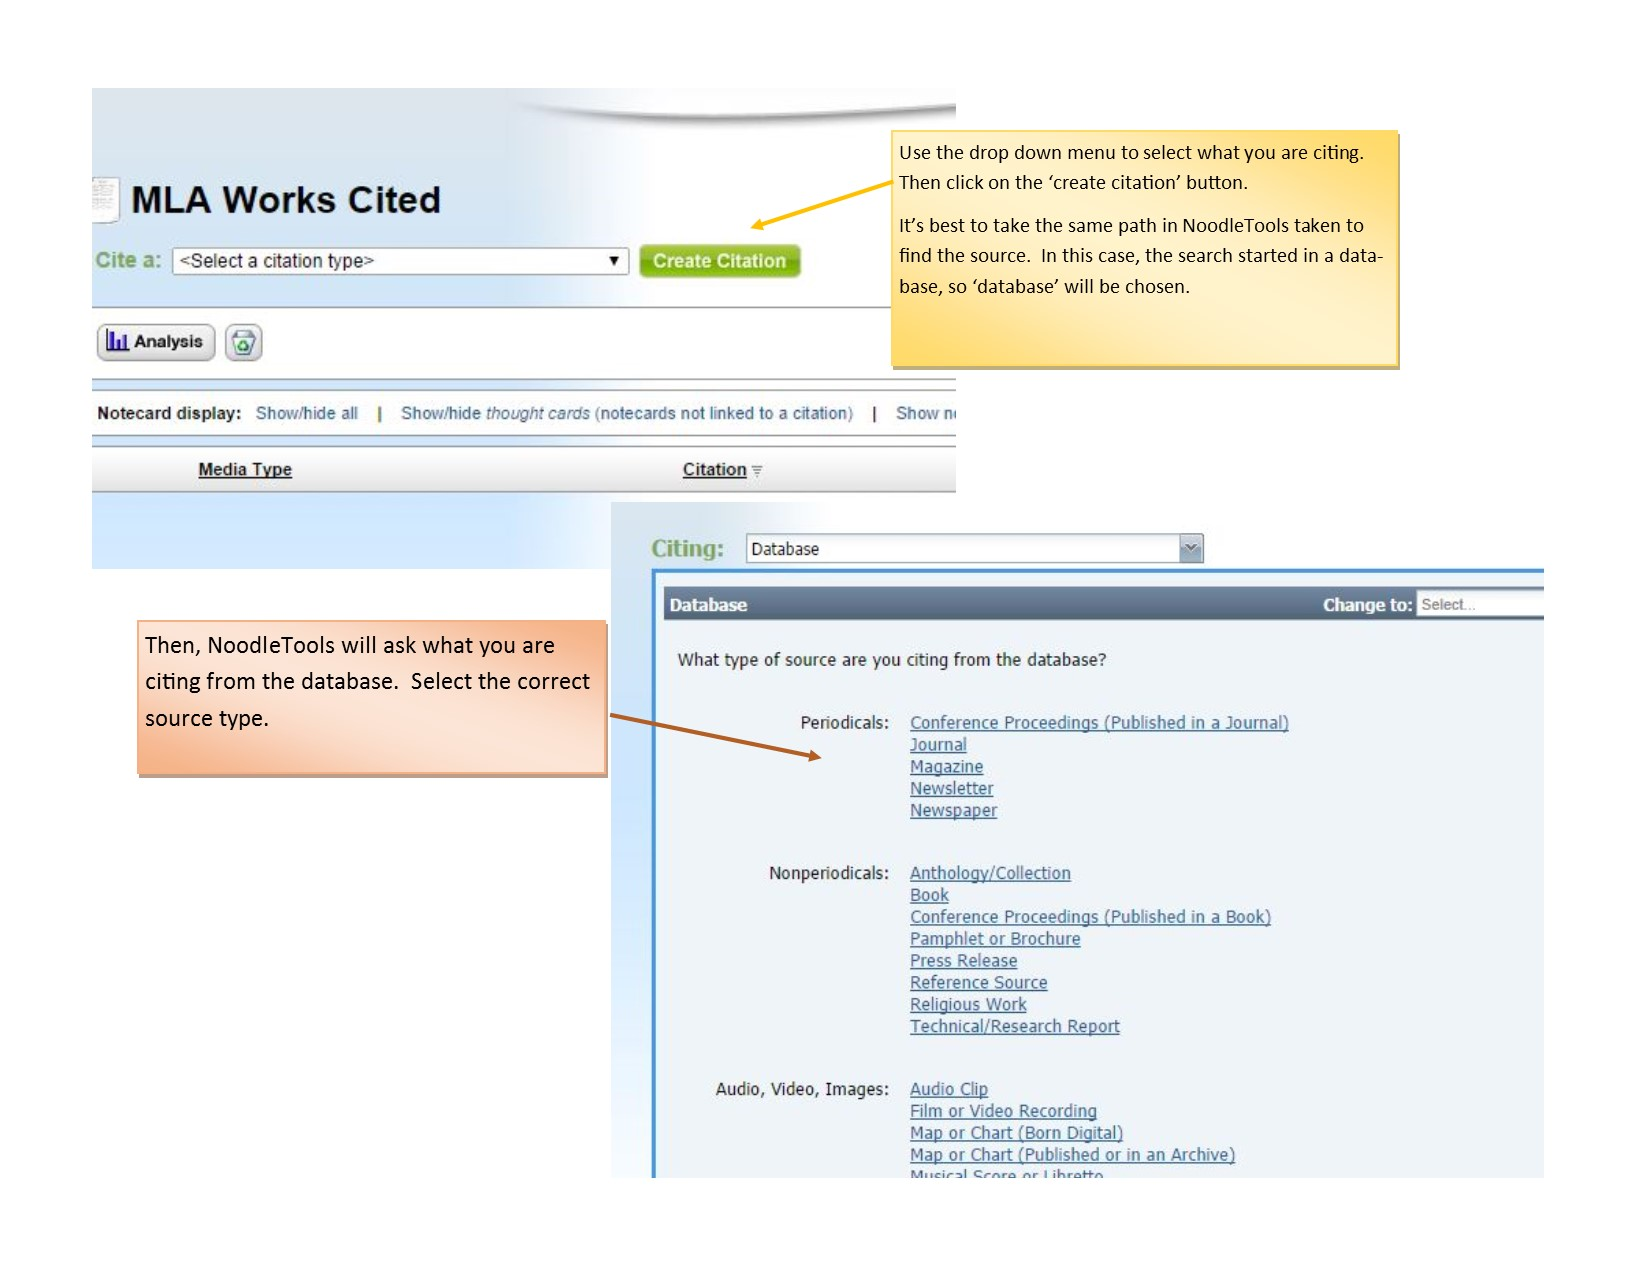 Choose What Is Being Cited  Take The Same Path In Noodletools Taken To  Find The Source